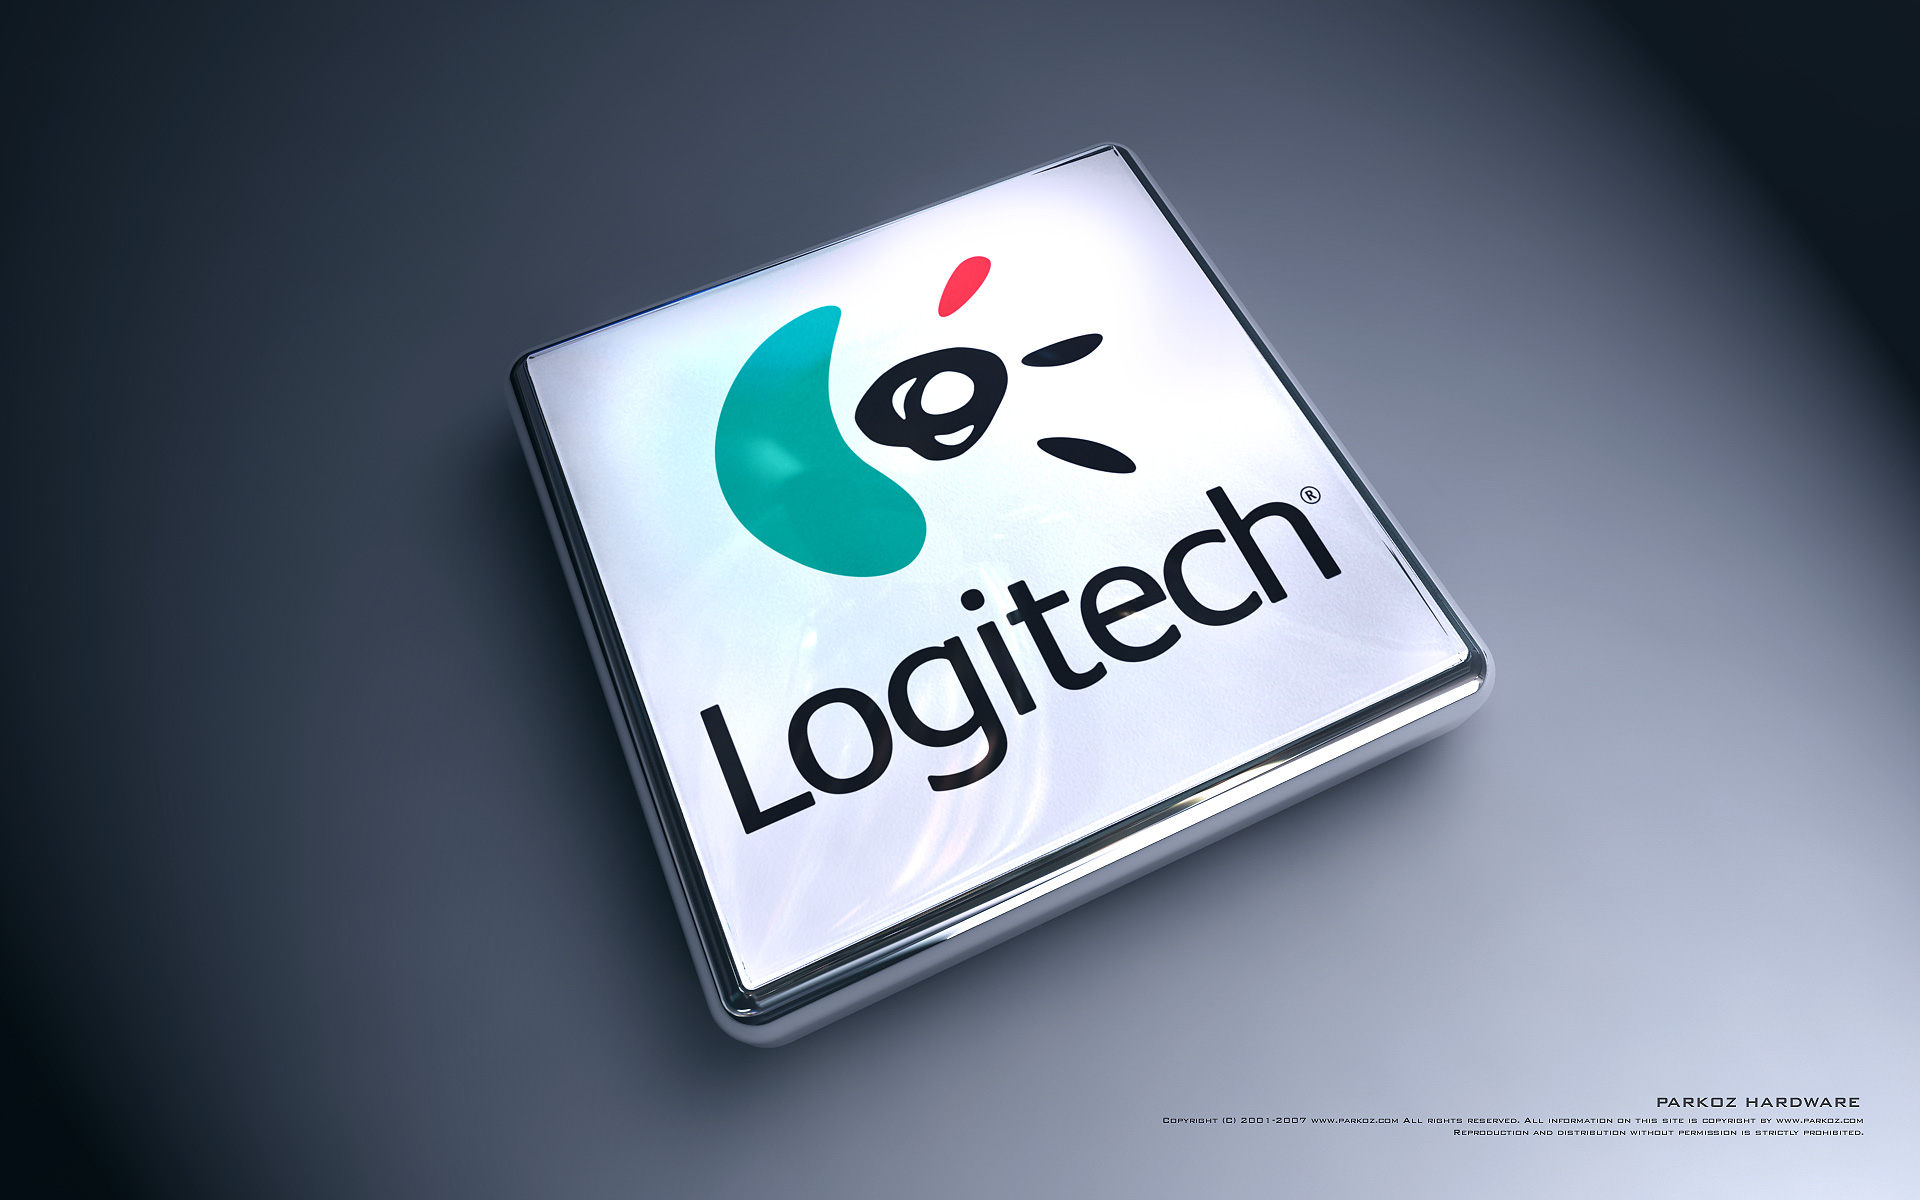 Logitech's New Products For 2013 Include An Illuminated Keyboard For iOS Devices